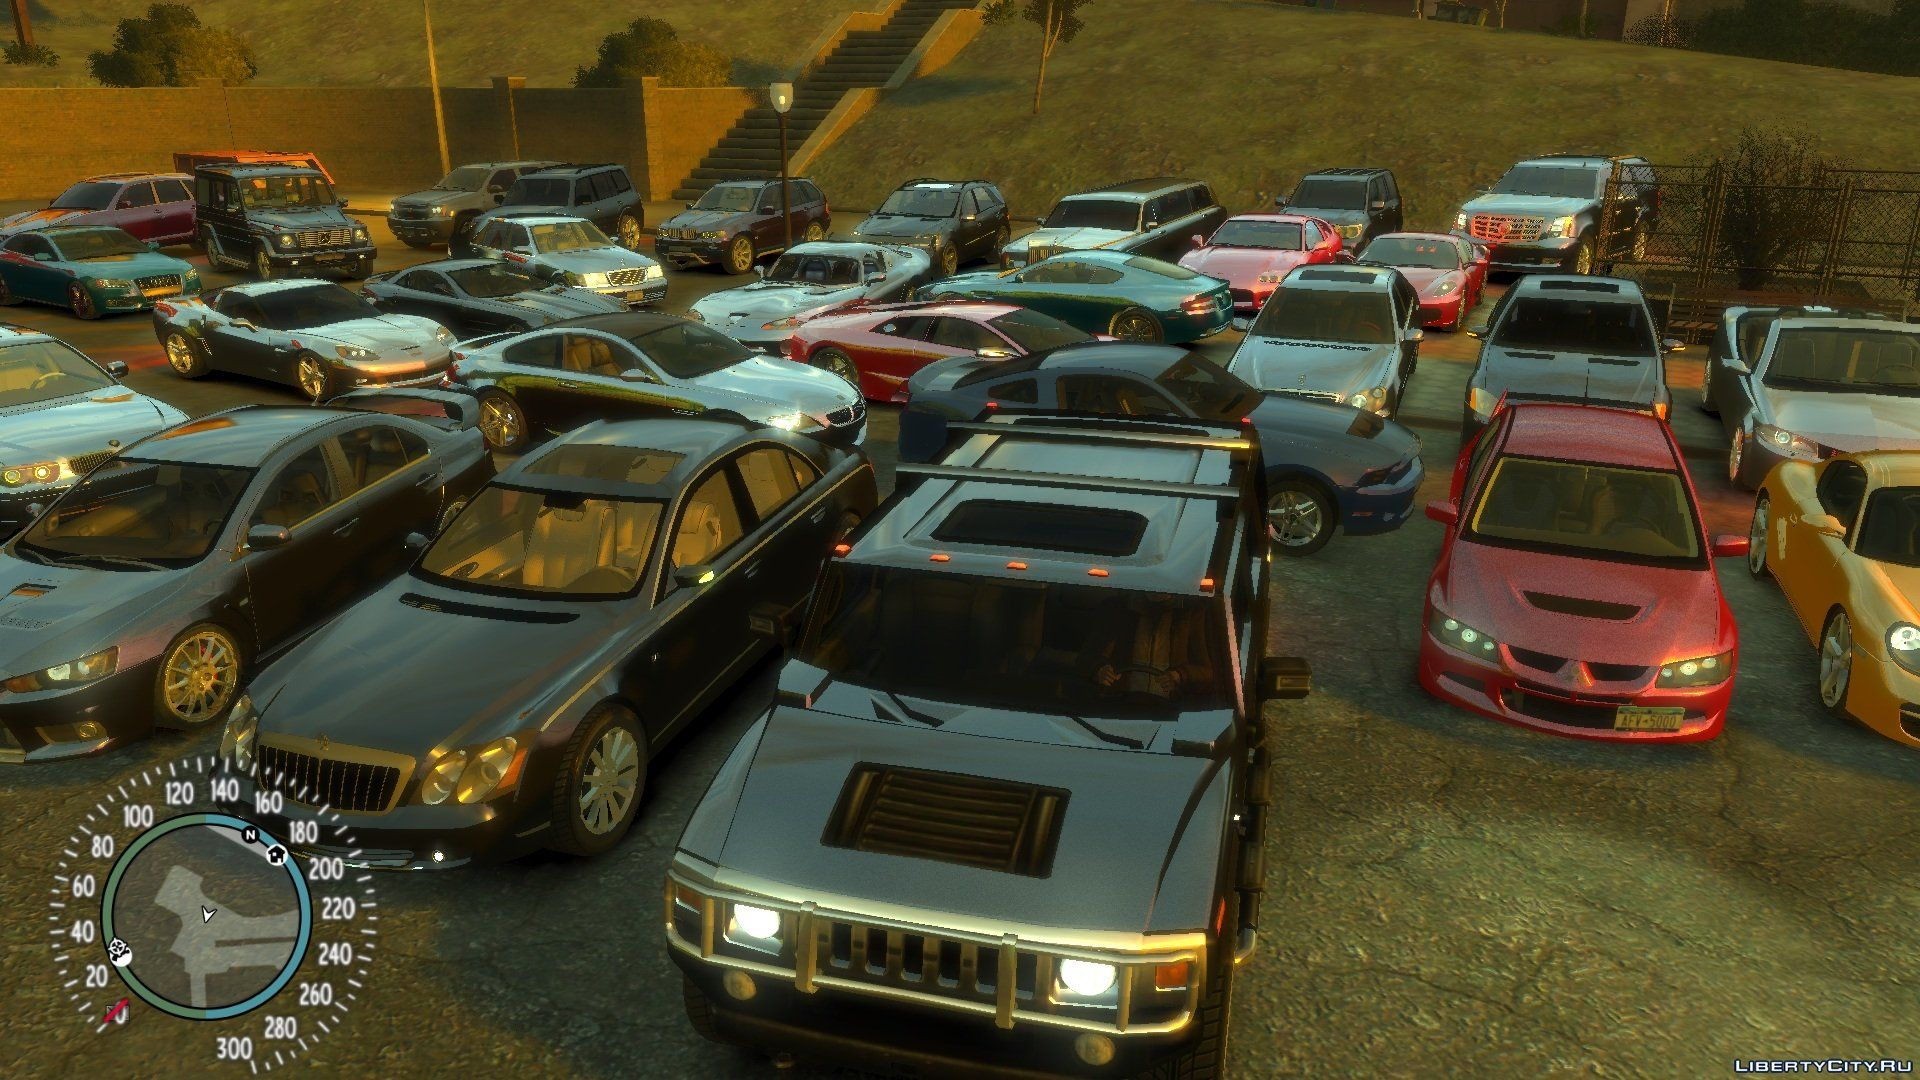 VH1 Original TV Shows, Reality TV Shows VH1 Gta 4 car list with pictures